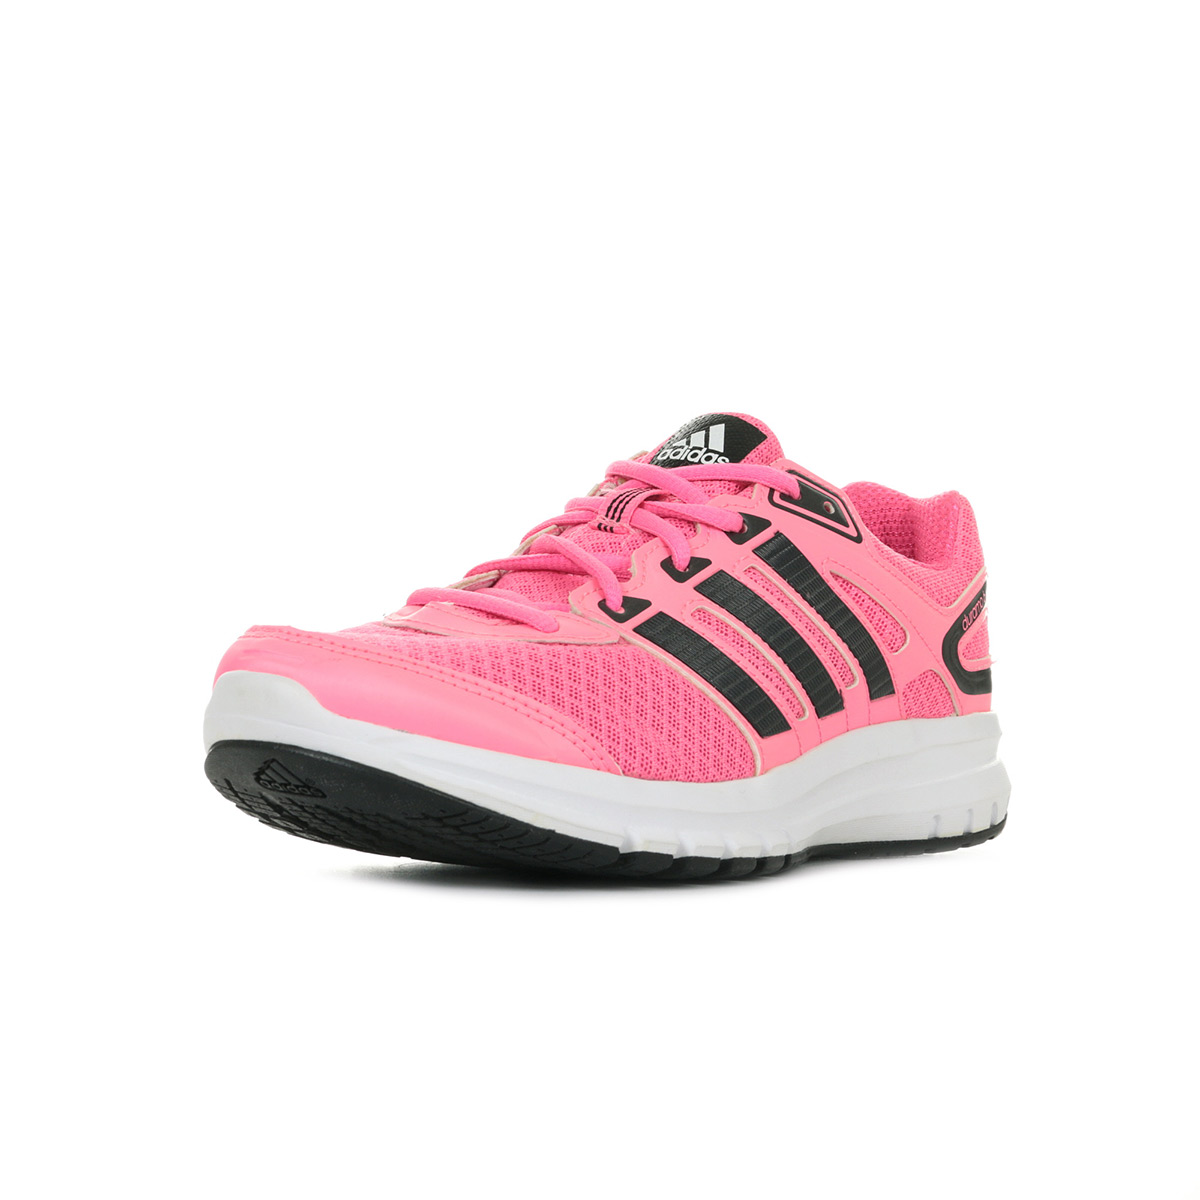 Chaussures adidas Performance homme Duramo 9 Running taille Rouge Textile Lacets